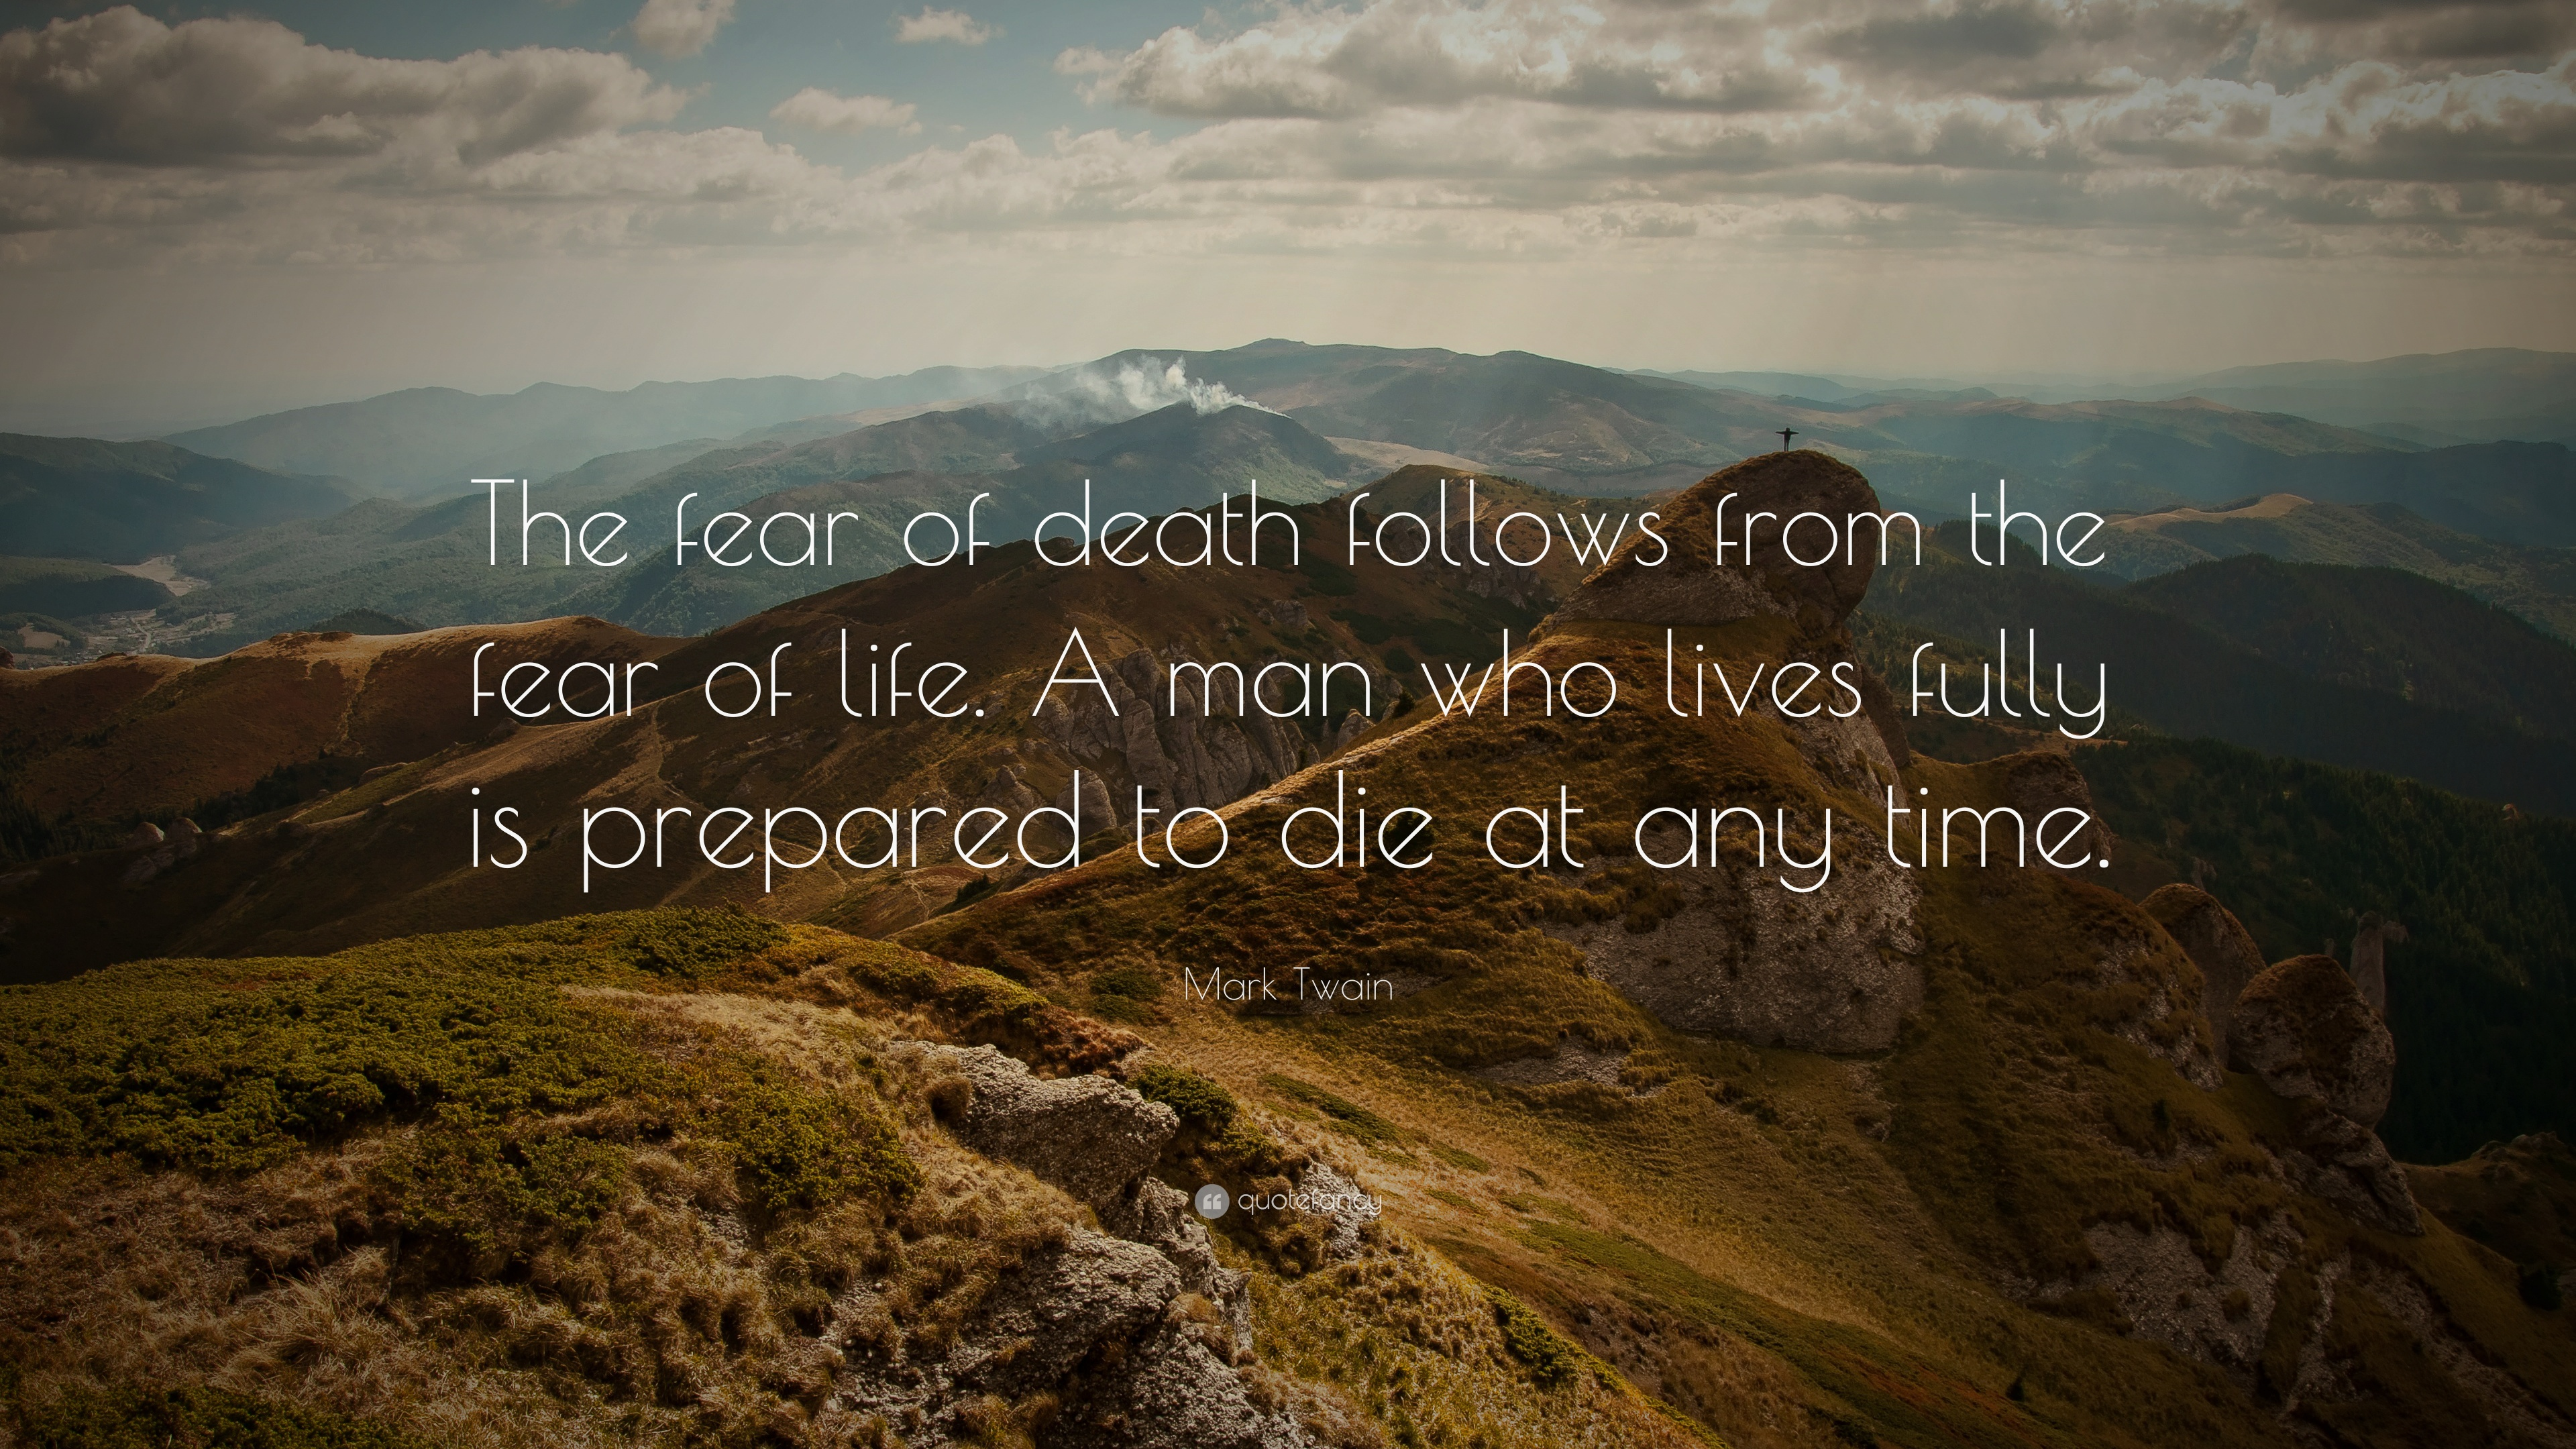 mark twain quote   u201cthe fear of death follows from the fear